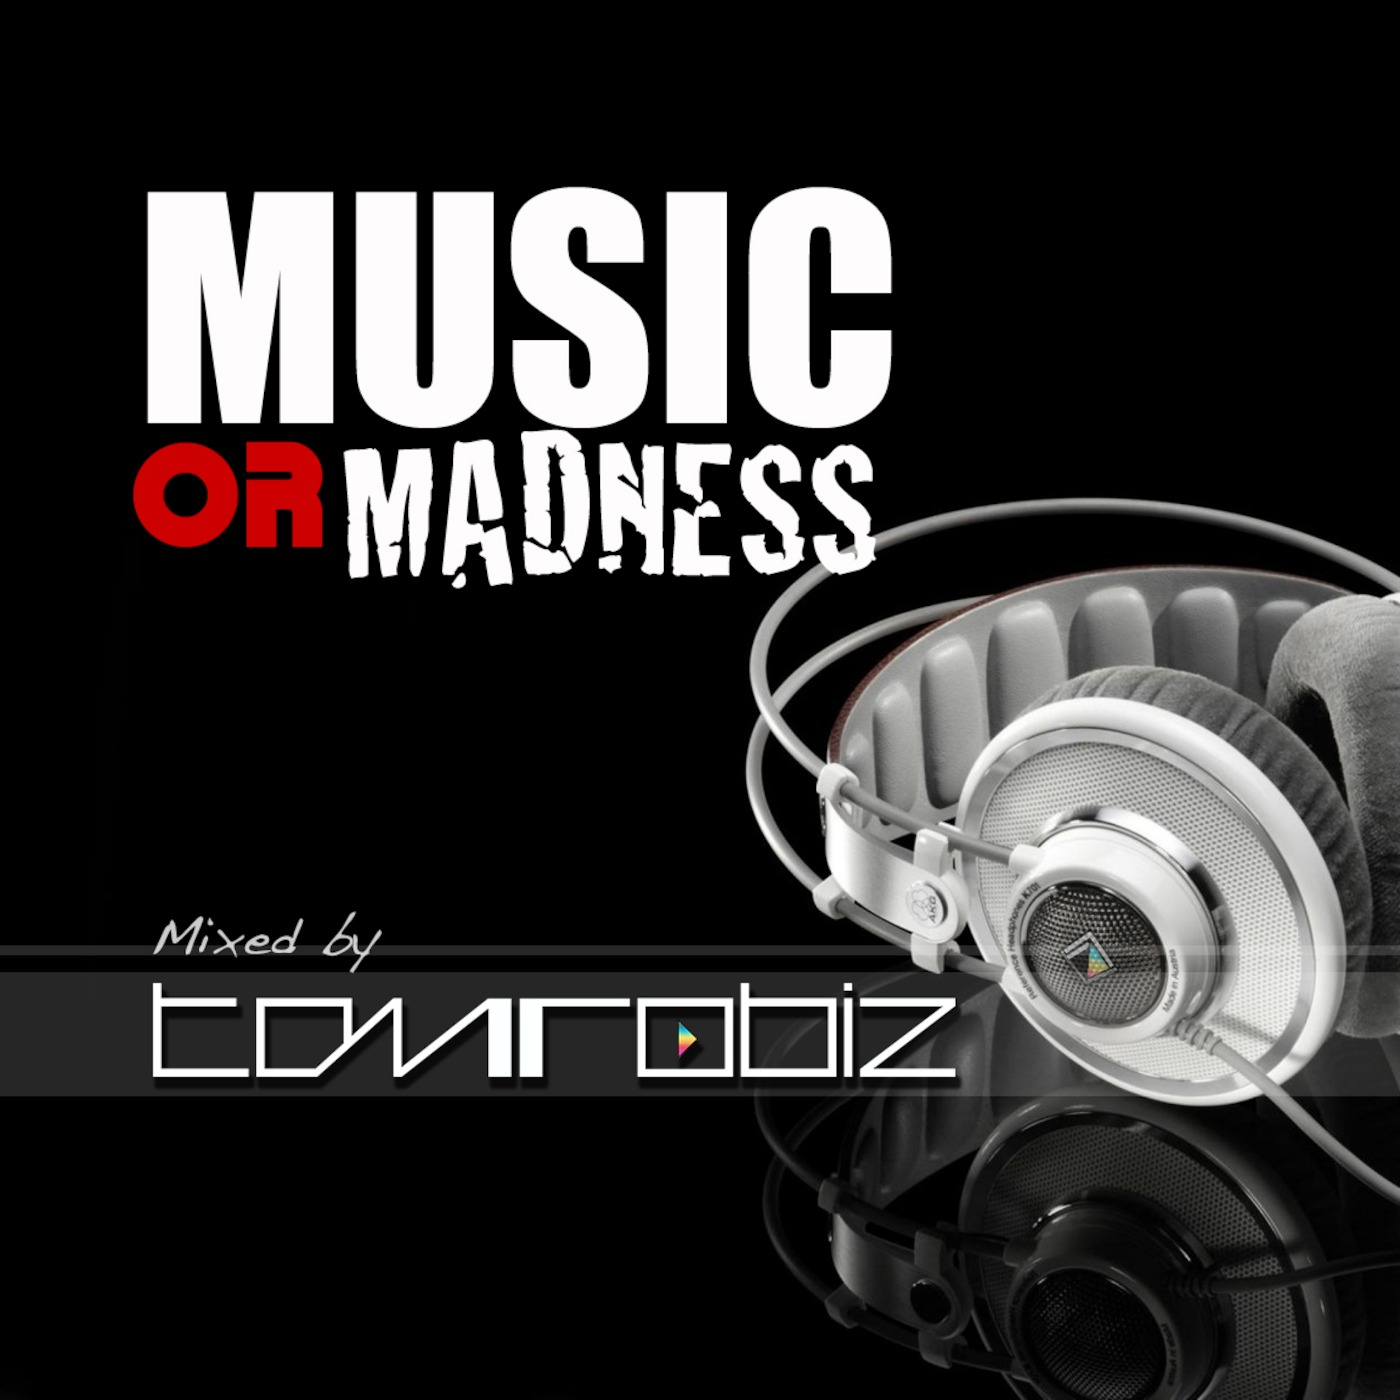 MUSIC OR MADNESS